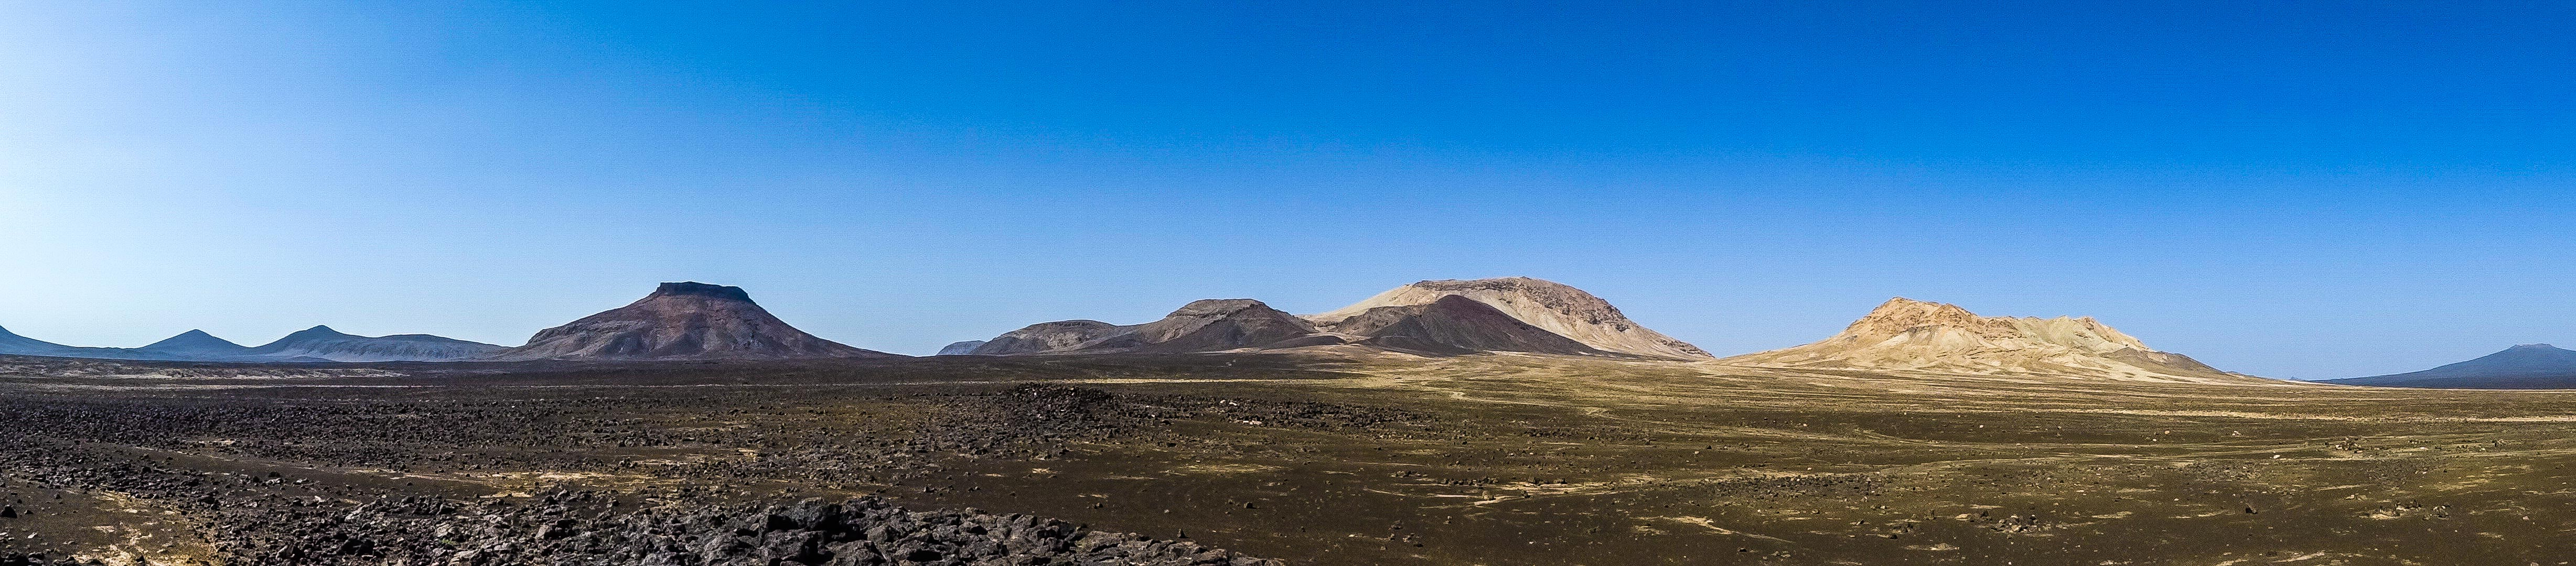 Volcanoes at the center of the Harrat Khaybar (photo: Florent Egal)